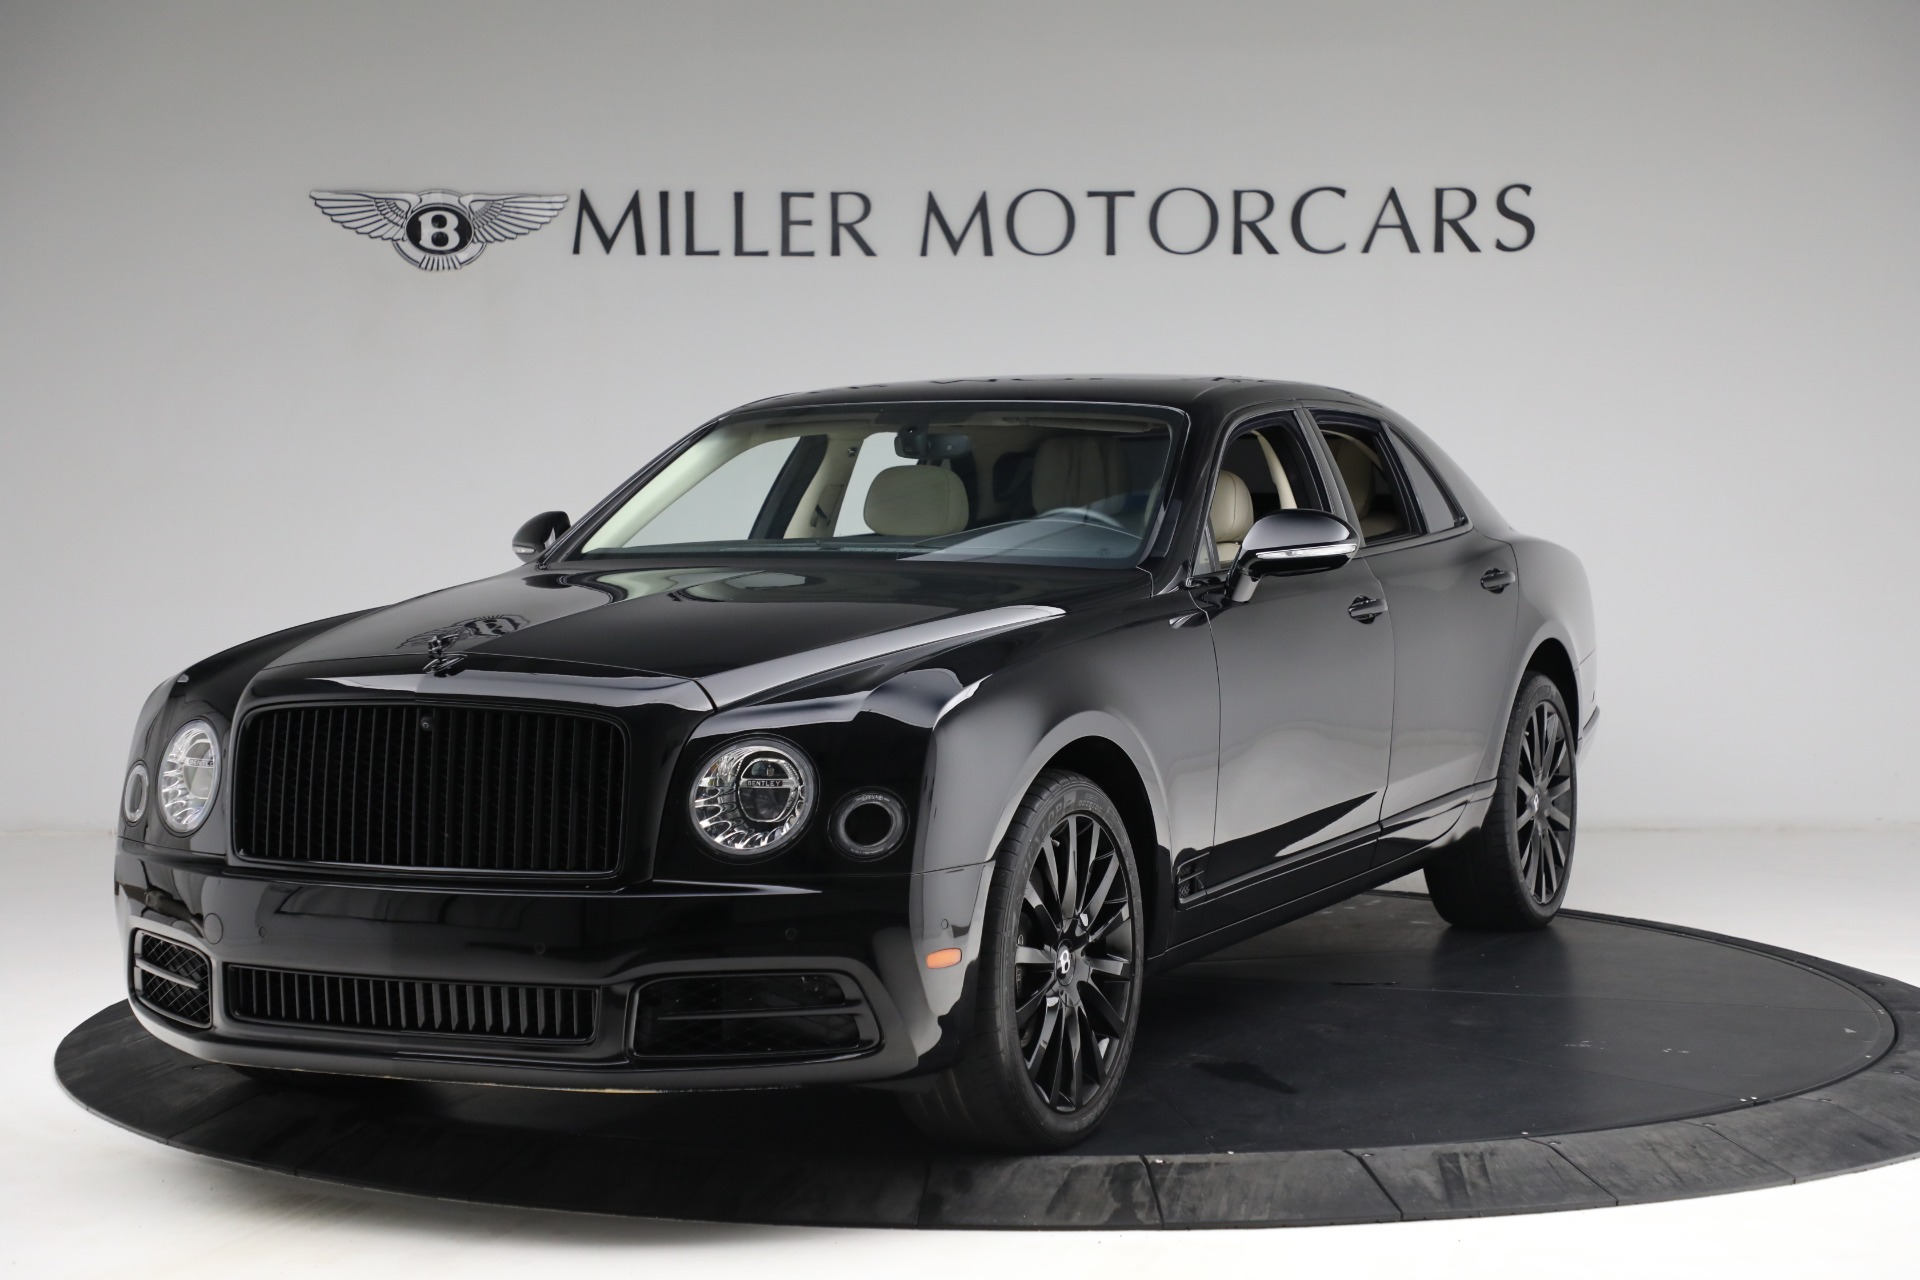 Used 2017 Bentley Mulsanne for sale $214,900 at Bentley Greenwich in Greenwich CT 06830 1